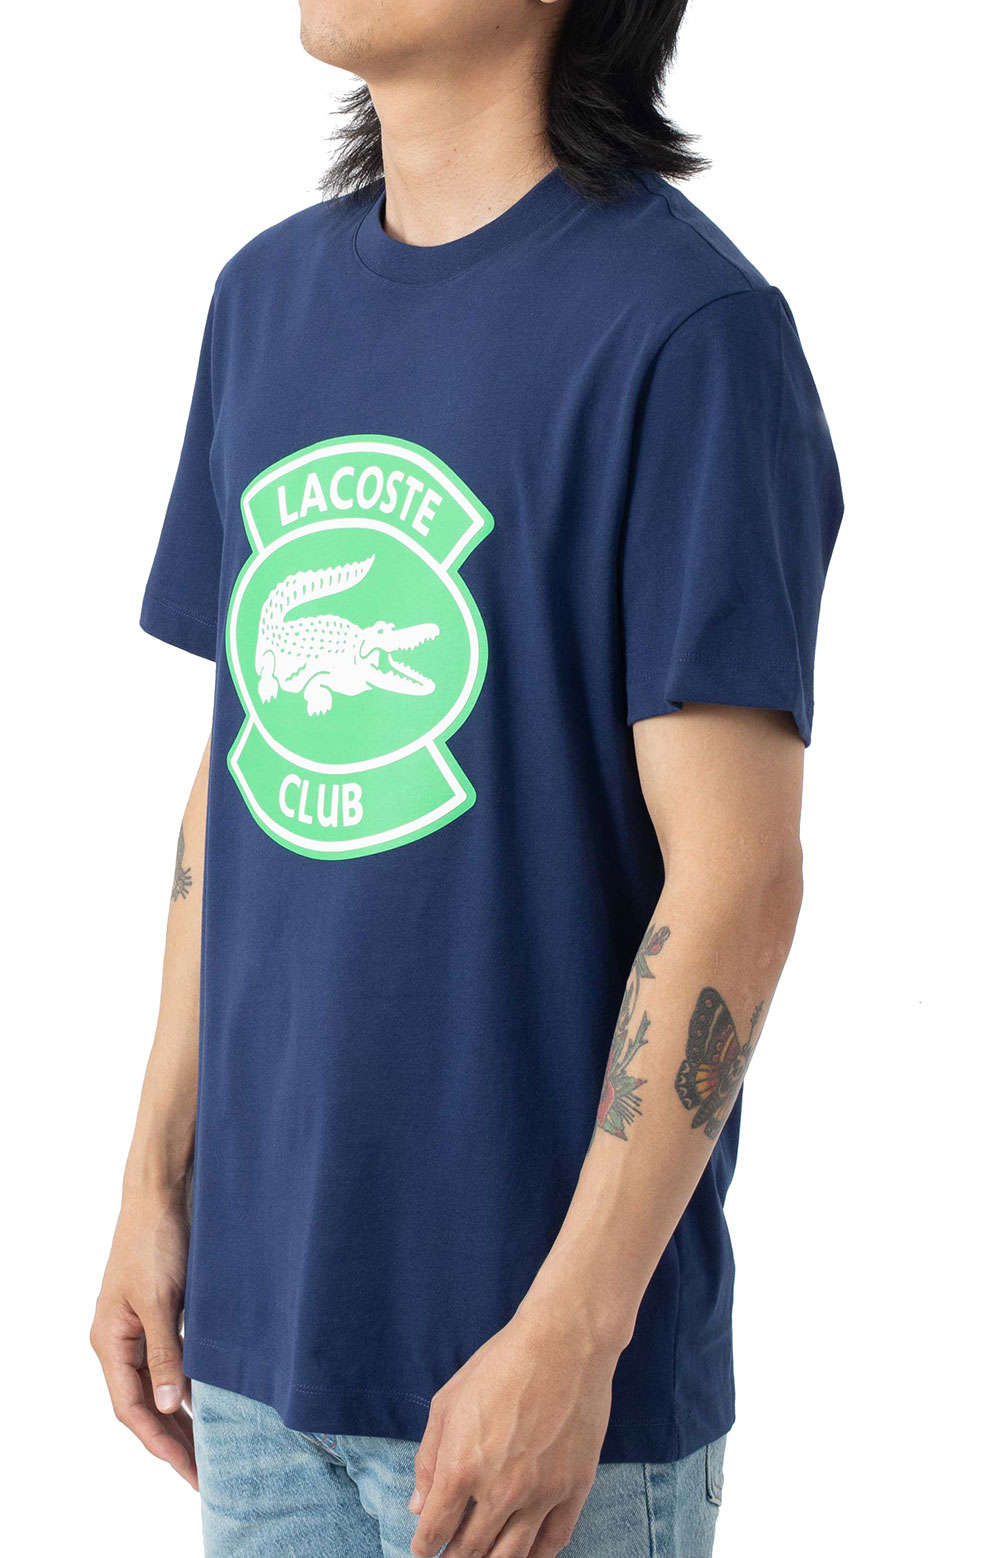 Oversized Lacoste Club Badge Cotton T-Shirt - Navy 2